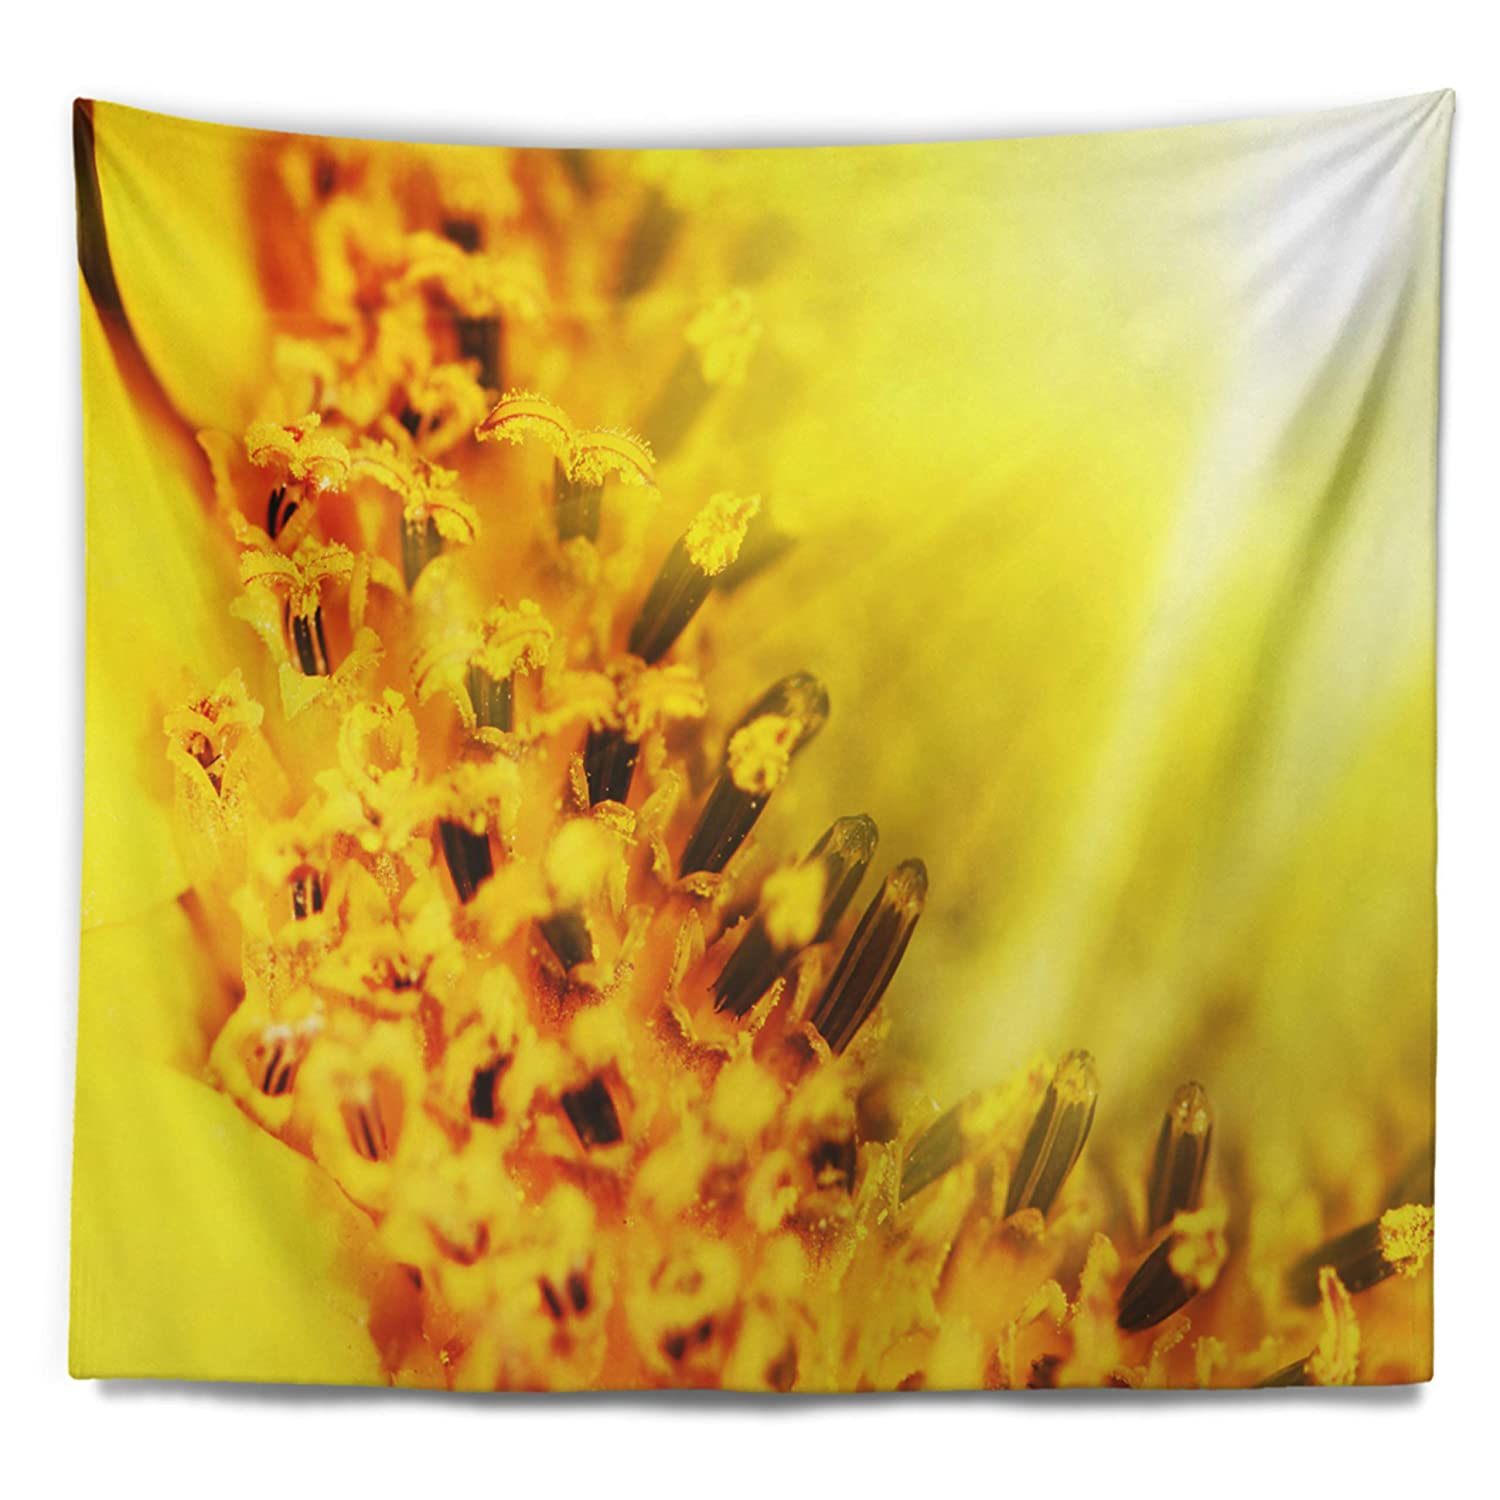 Created On Lightweight Polyester Fabric 39 in Designart TAP12448-39-32  Bright Yellow Sunflower Close Up Floral Blanket D/écor Art for Home and Office Wall Tapestry Medium x 32 in